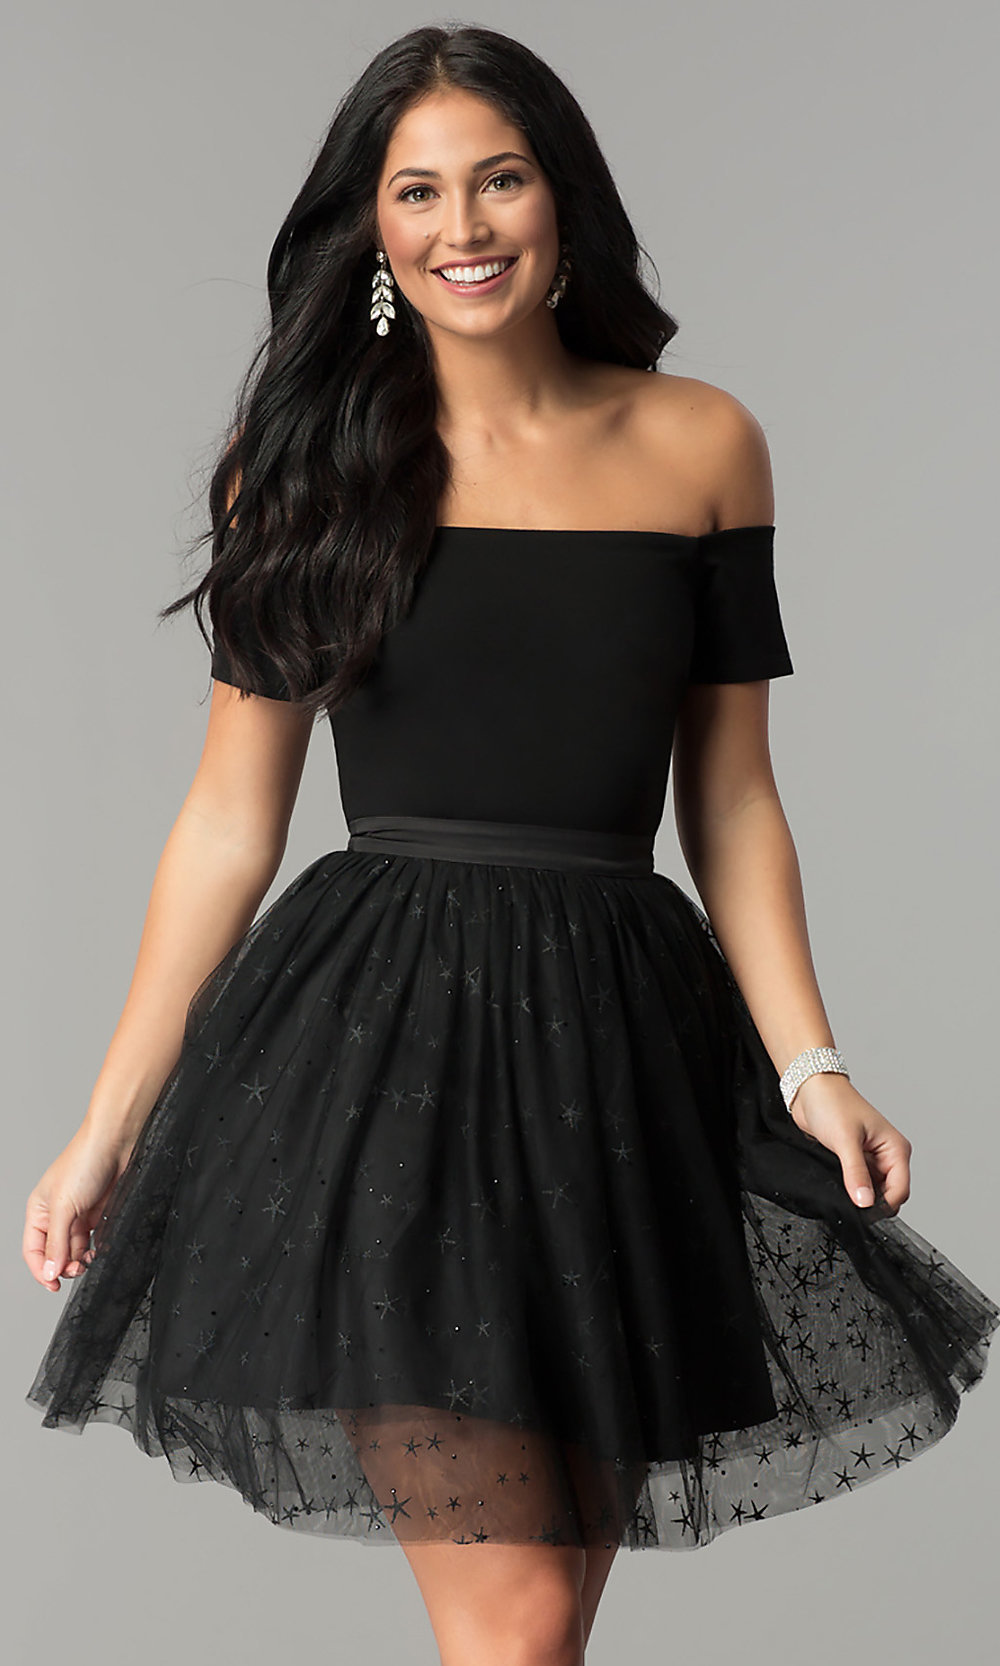 buying now outlet store sale discount Black Glitter-Print Tulle Short Party Dress - PromGirl